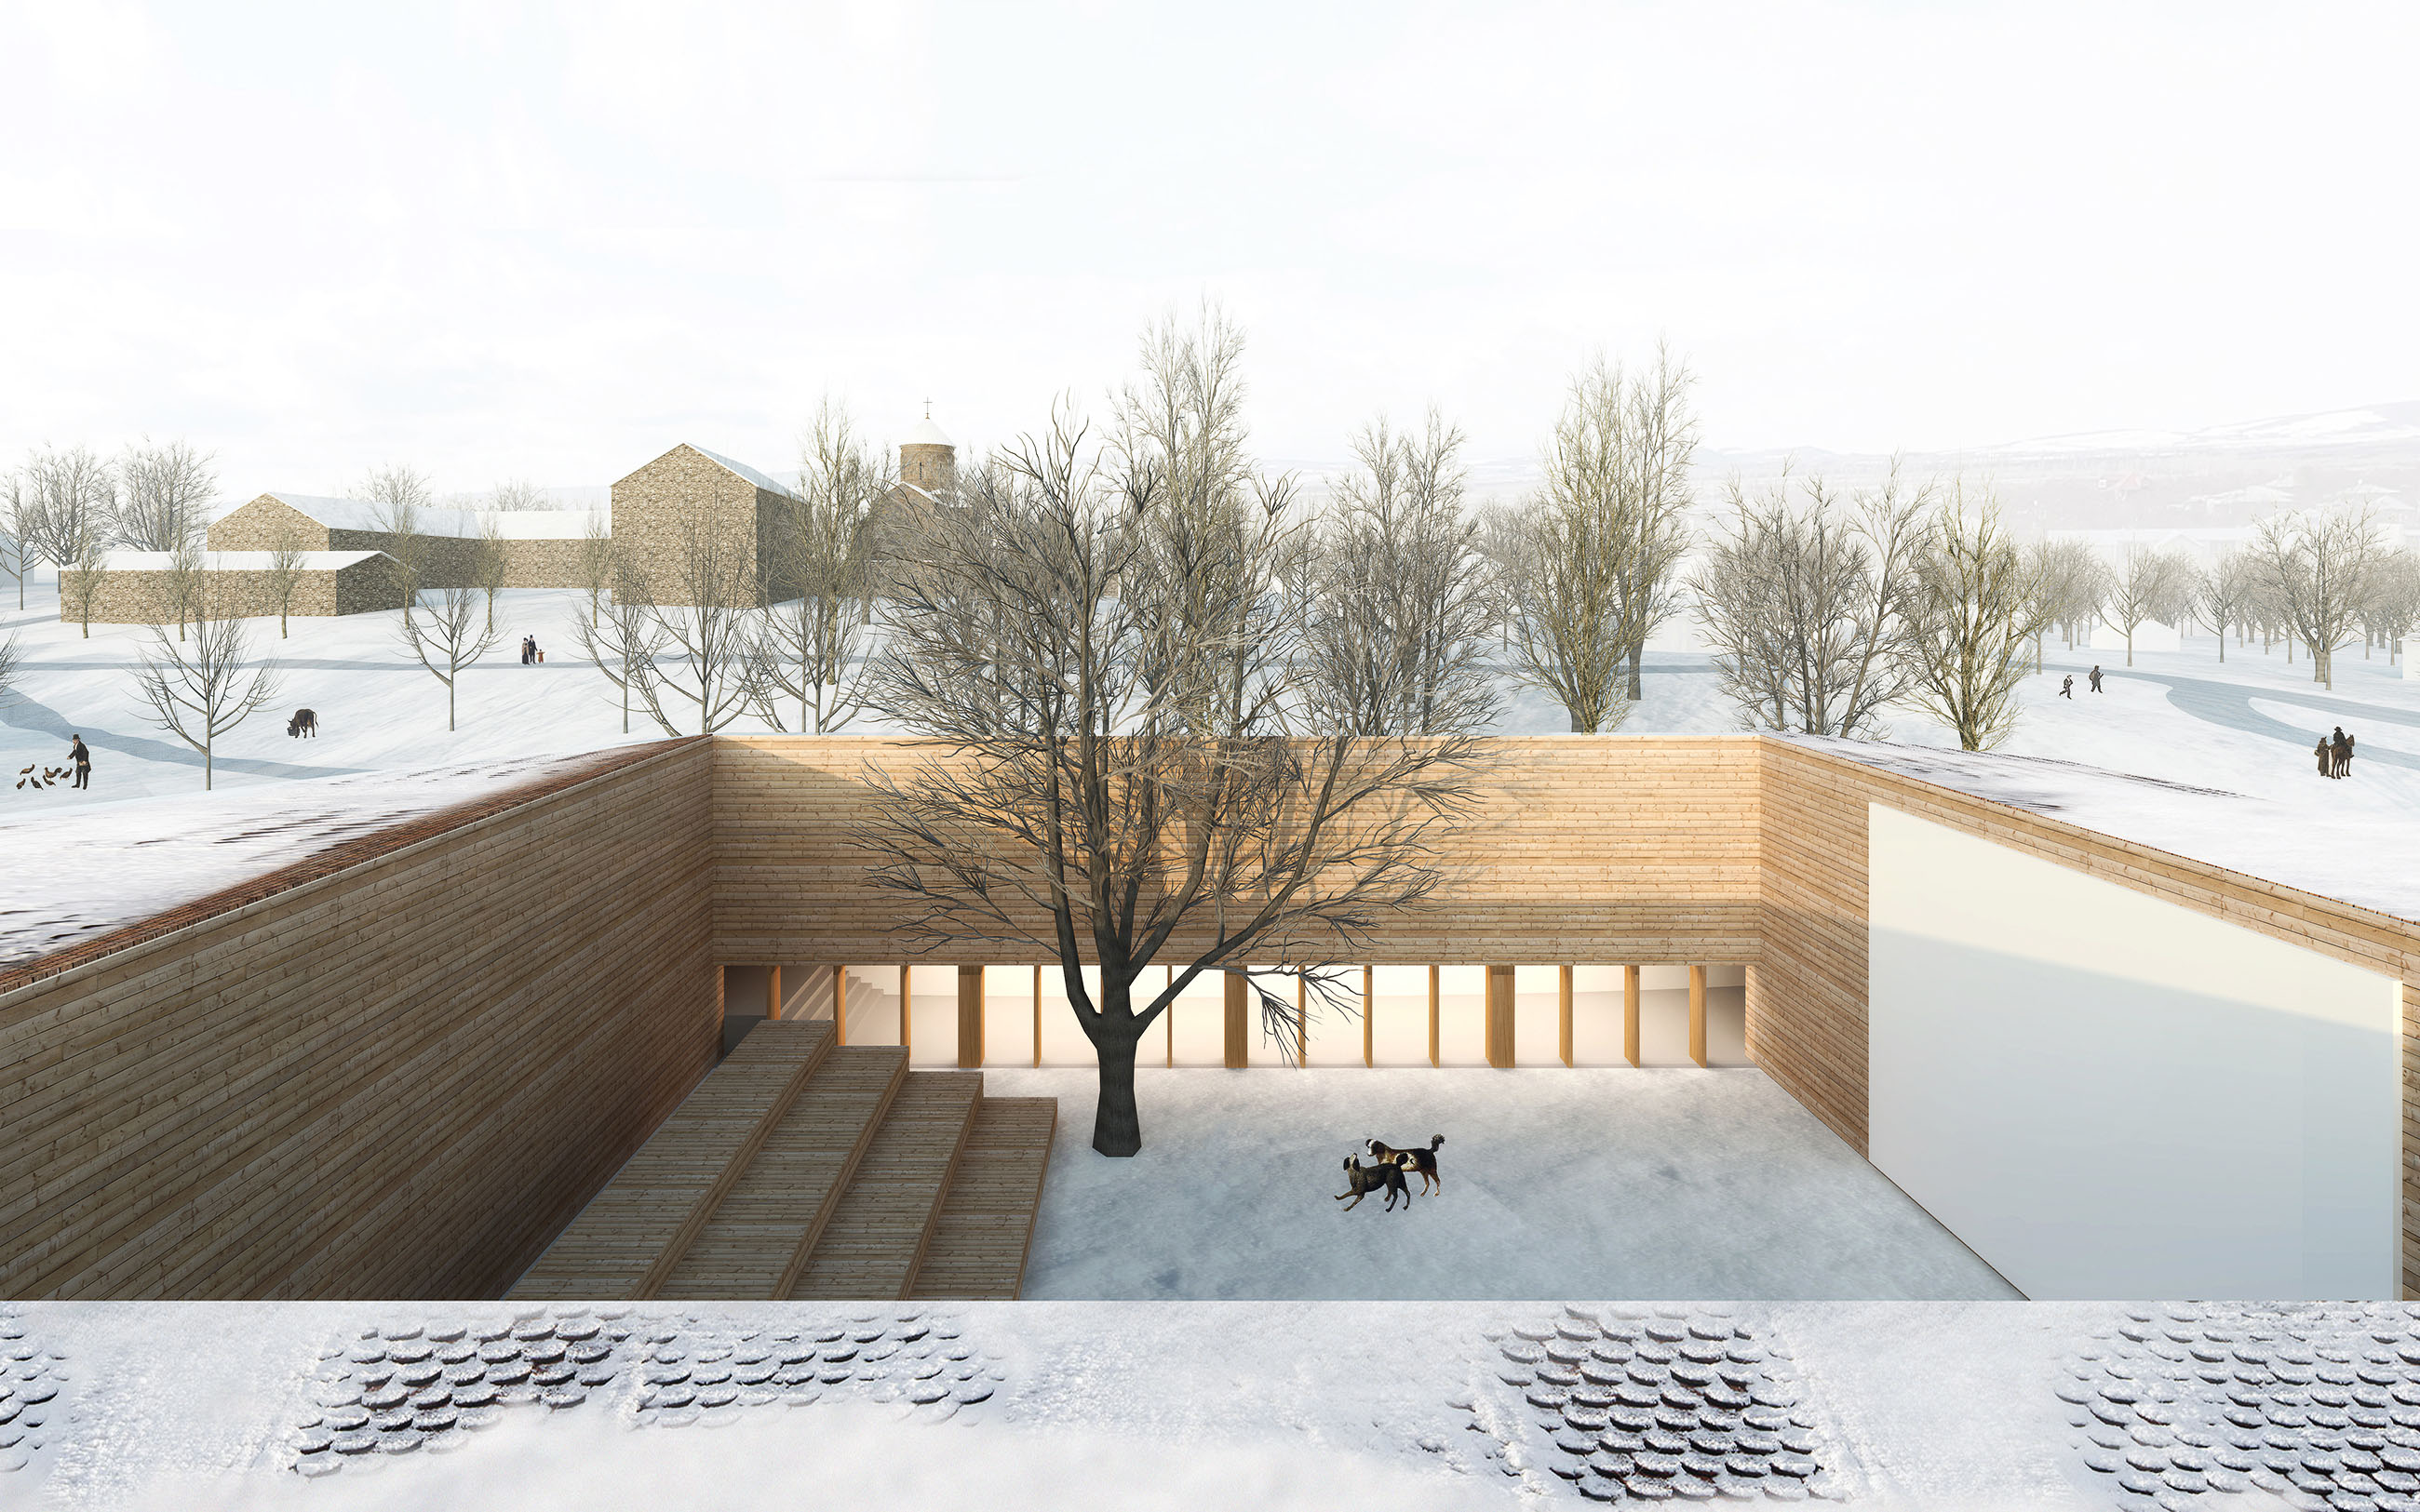 10_About Architecture_Nikozi 2nd prize